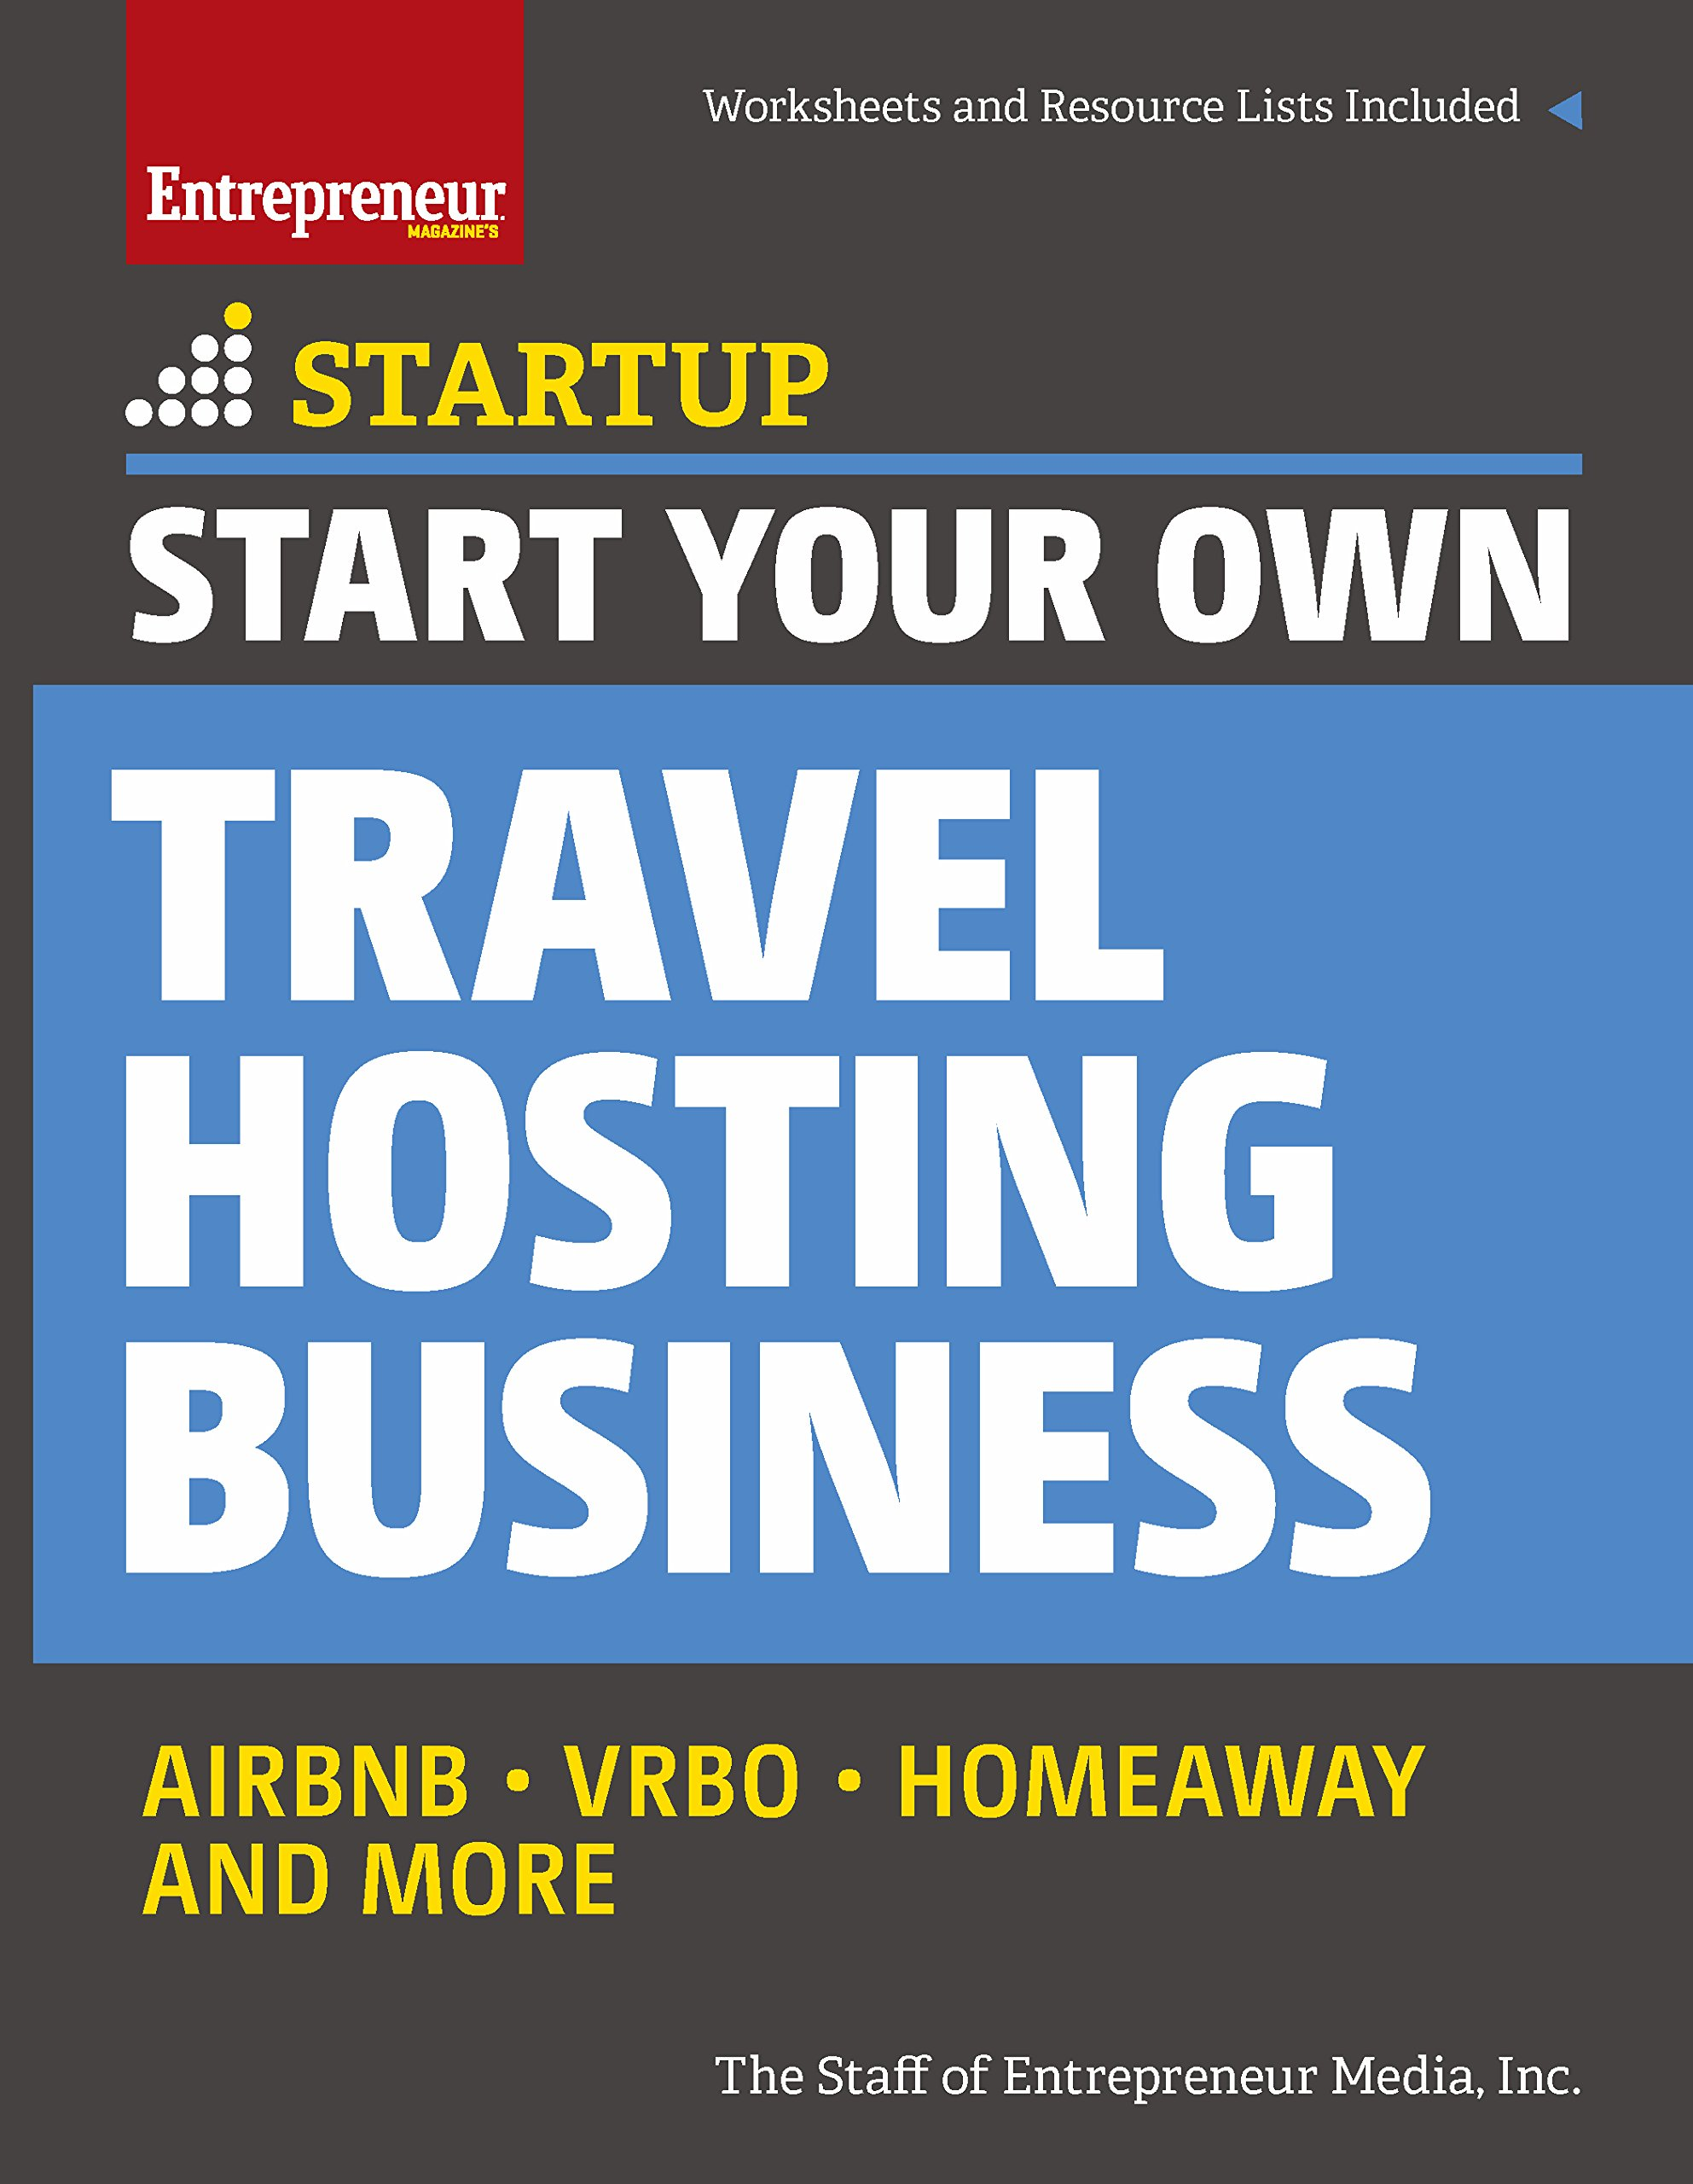 Start Your Own Travel Hosting Business: Airbnb, VRBO, Homeaway, and More (StartUp Series)